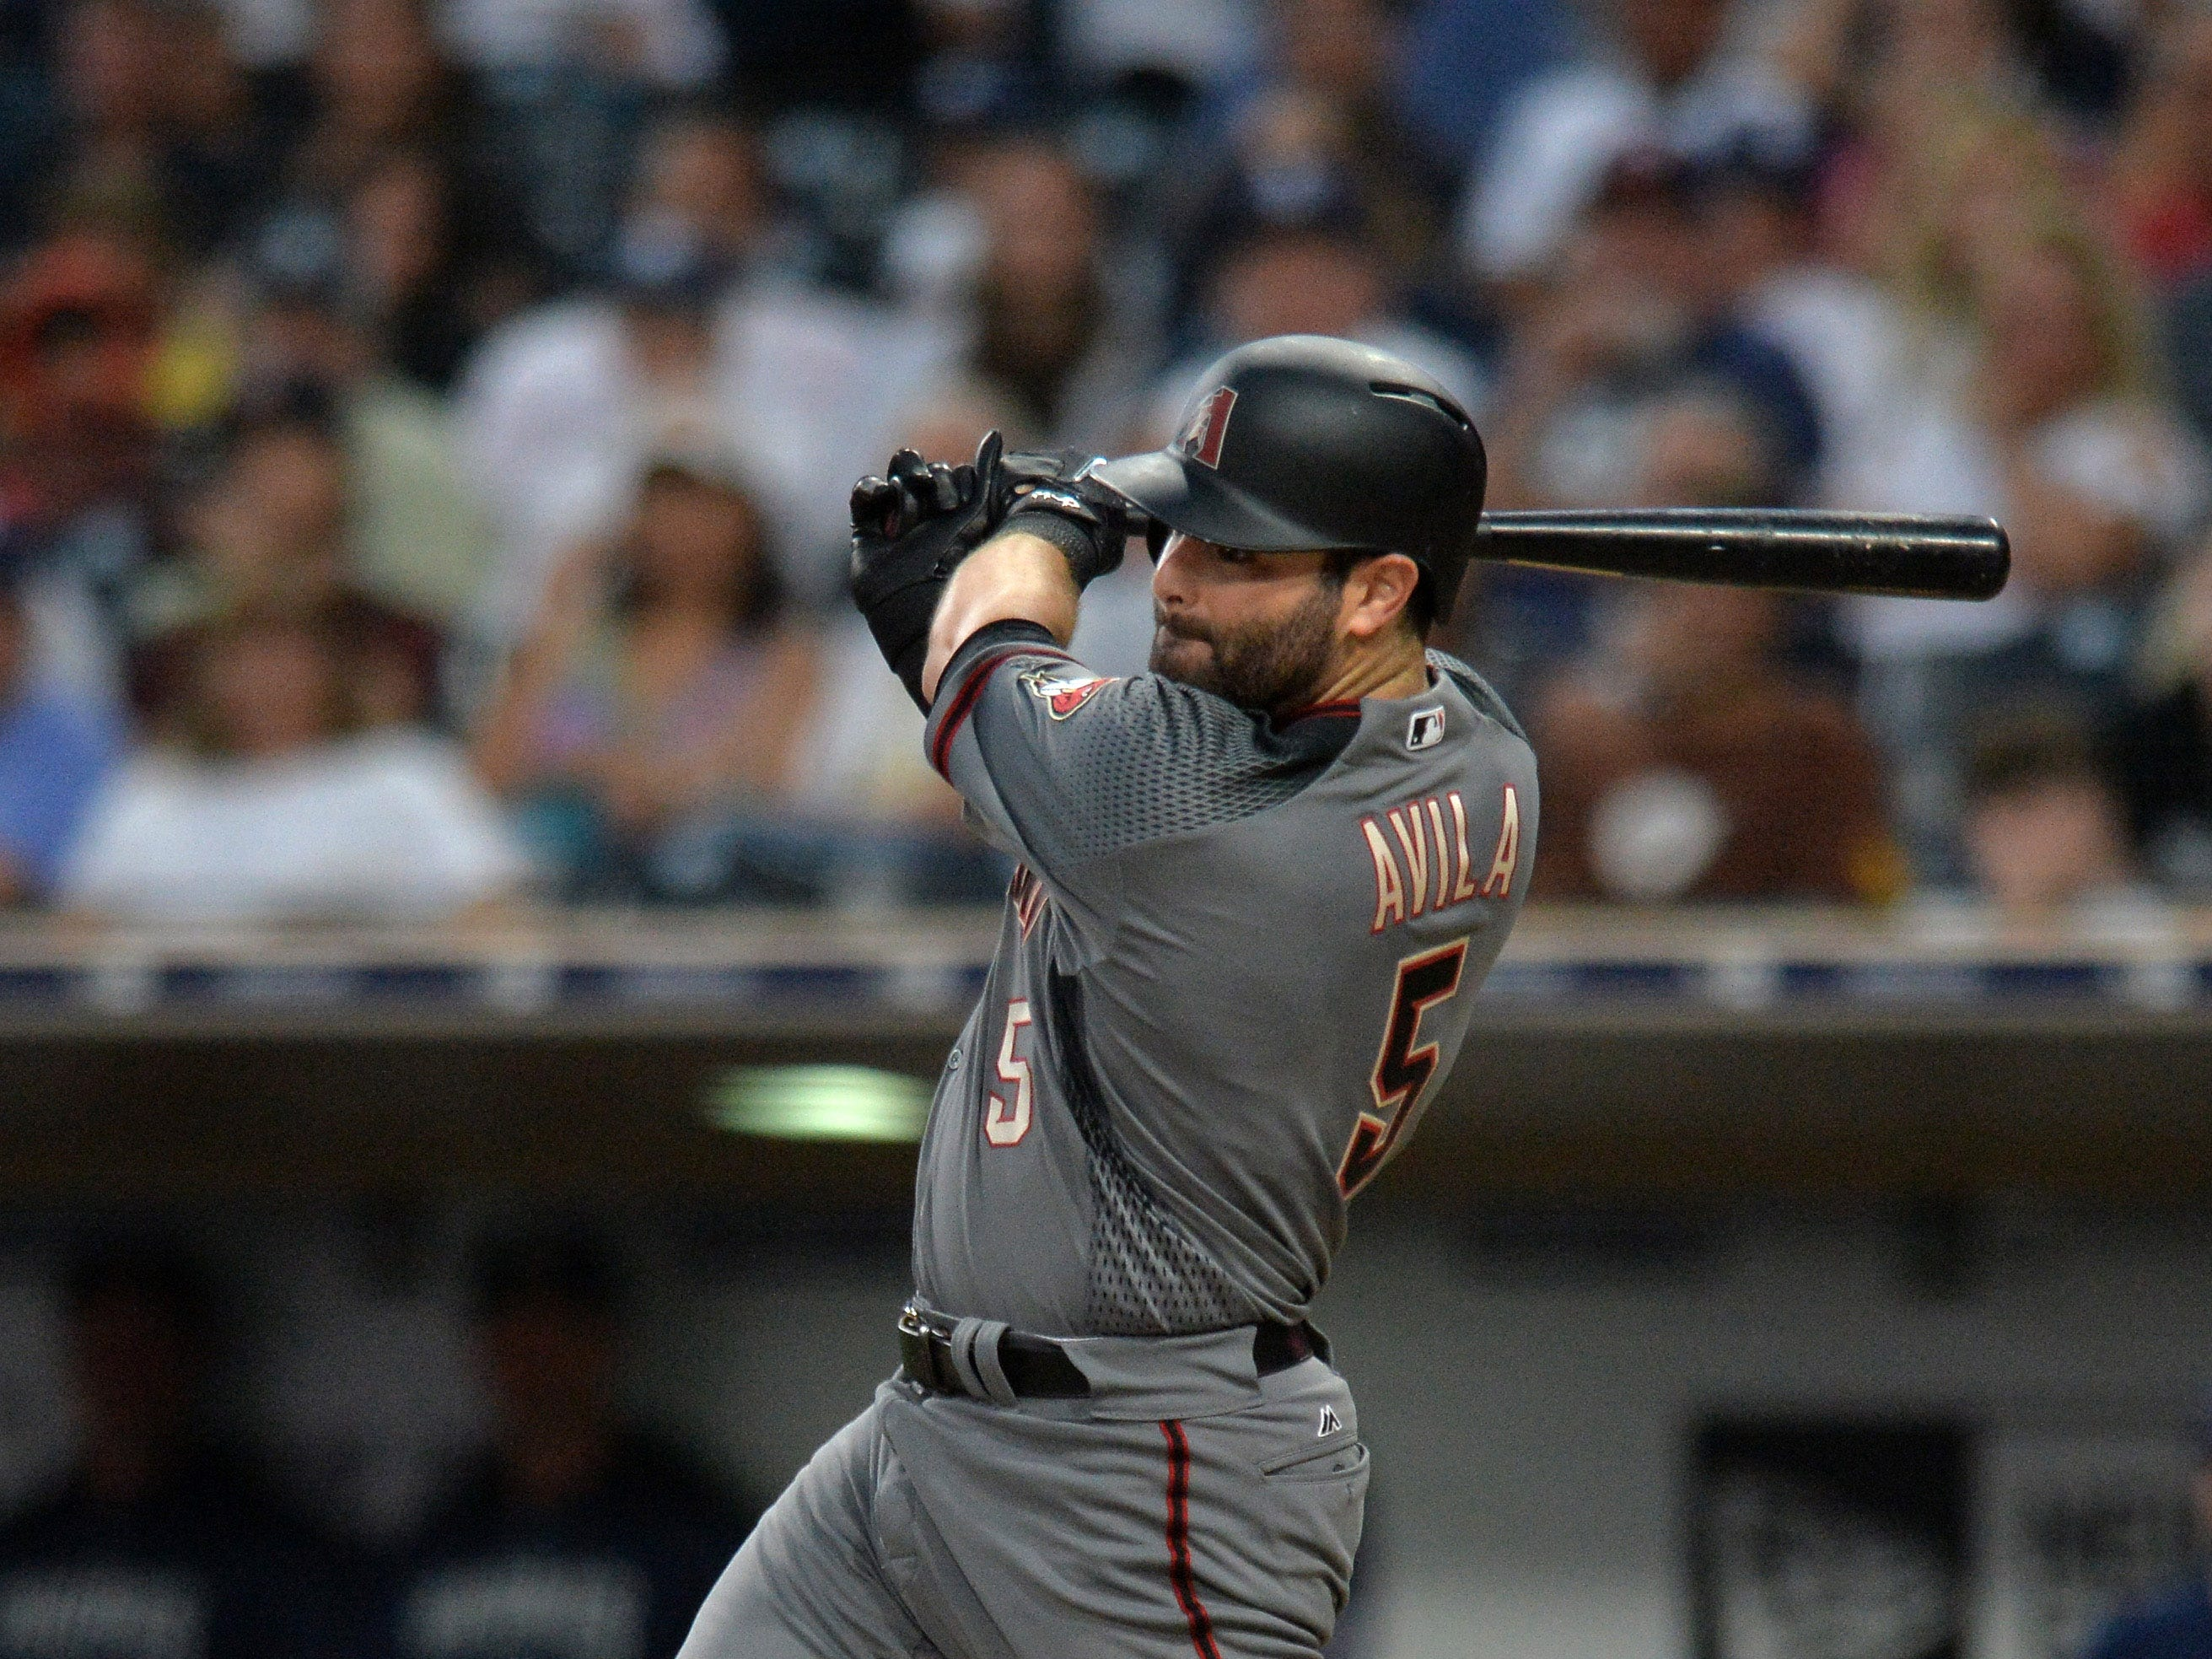 Aug 16, 2018; San Diego, CA, USA; Arizona Diamondbacks catcher Alex Avila (5) hits a two RBI single in the first inning against the San Diego Padres at Petco Park. Mandatory Credit: Jake Roth-USA TODAY Sports